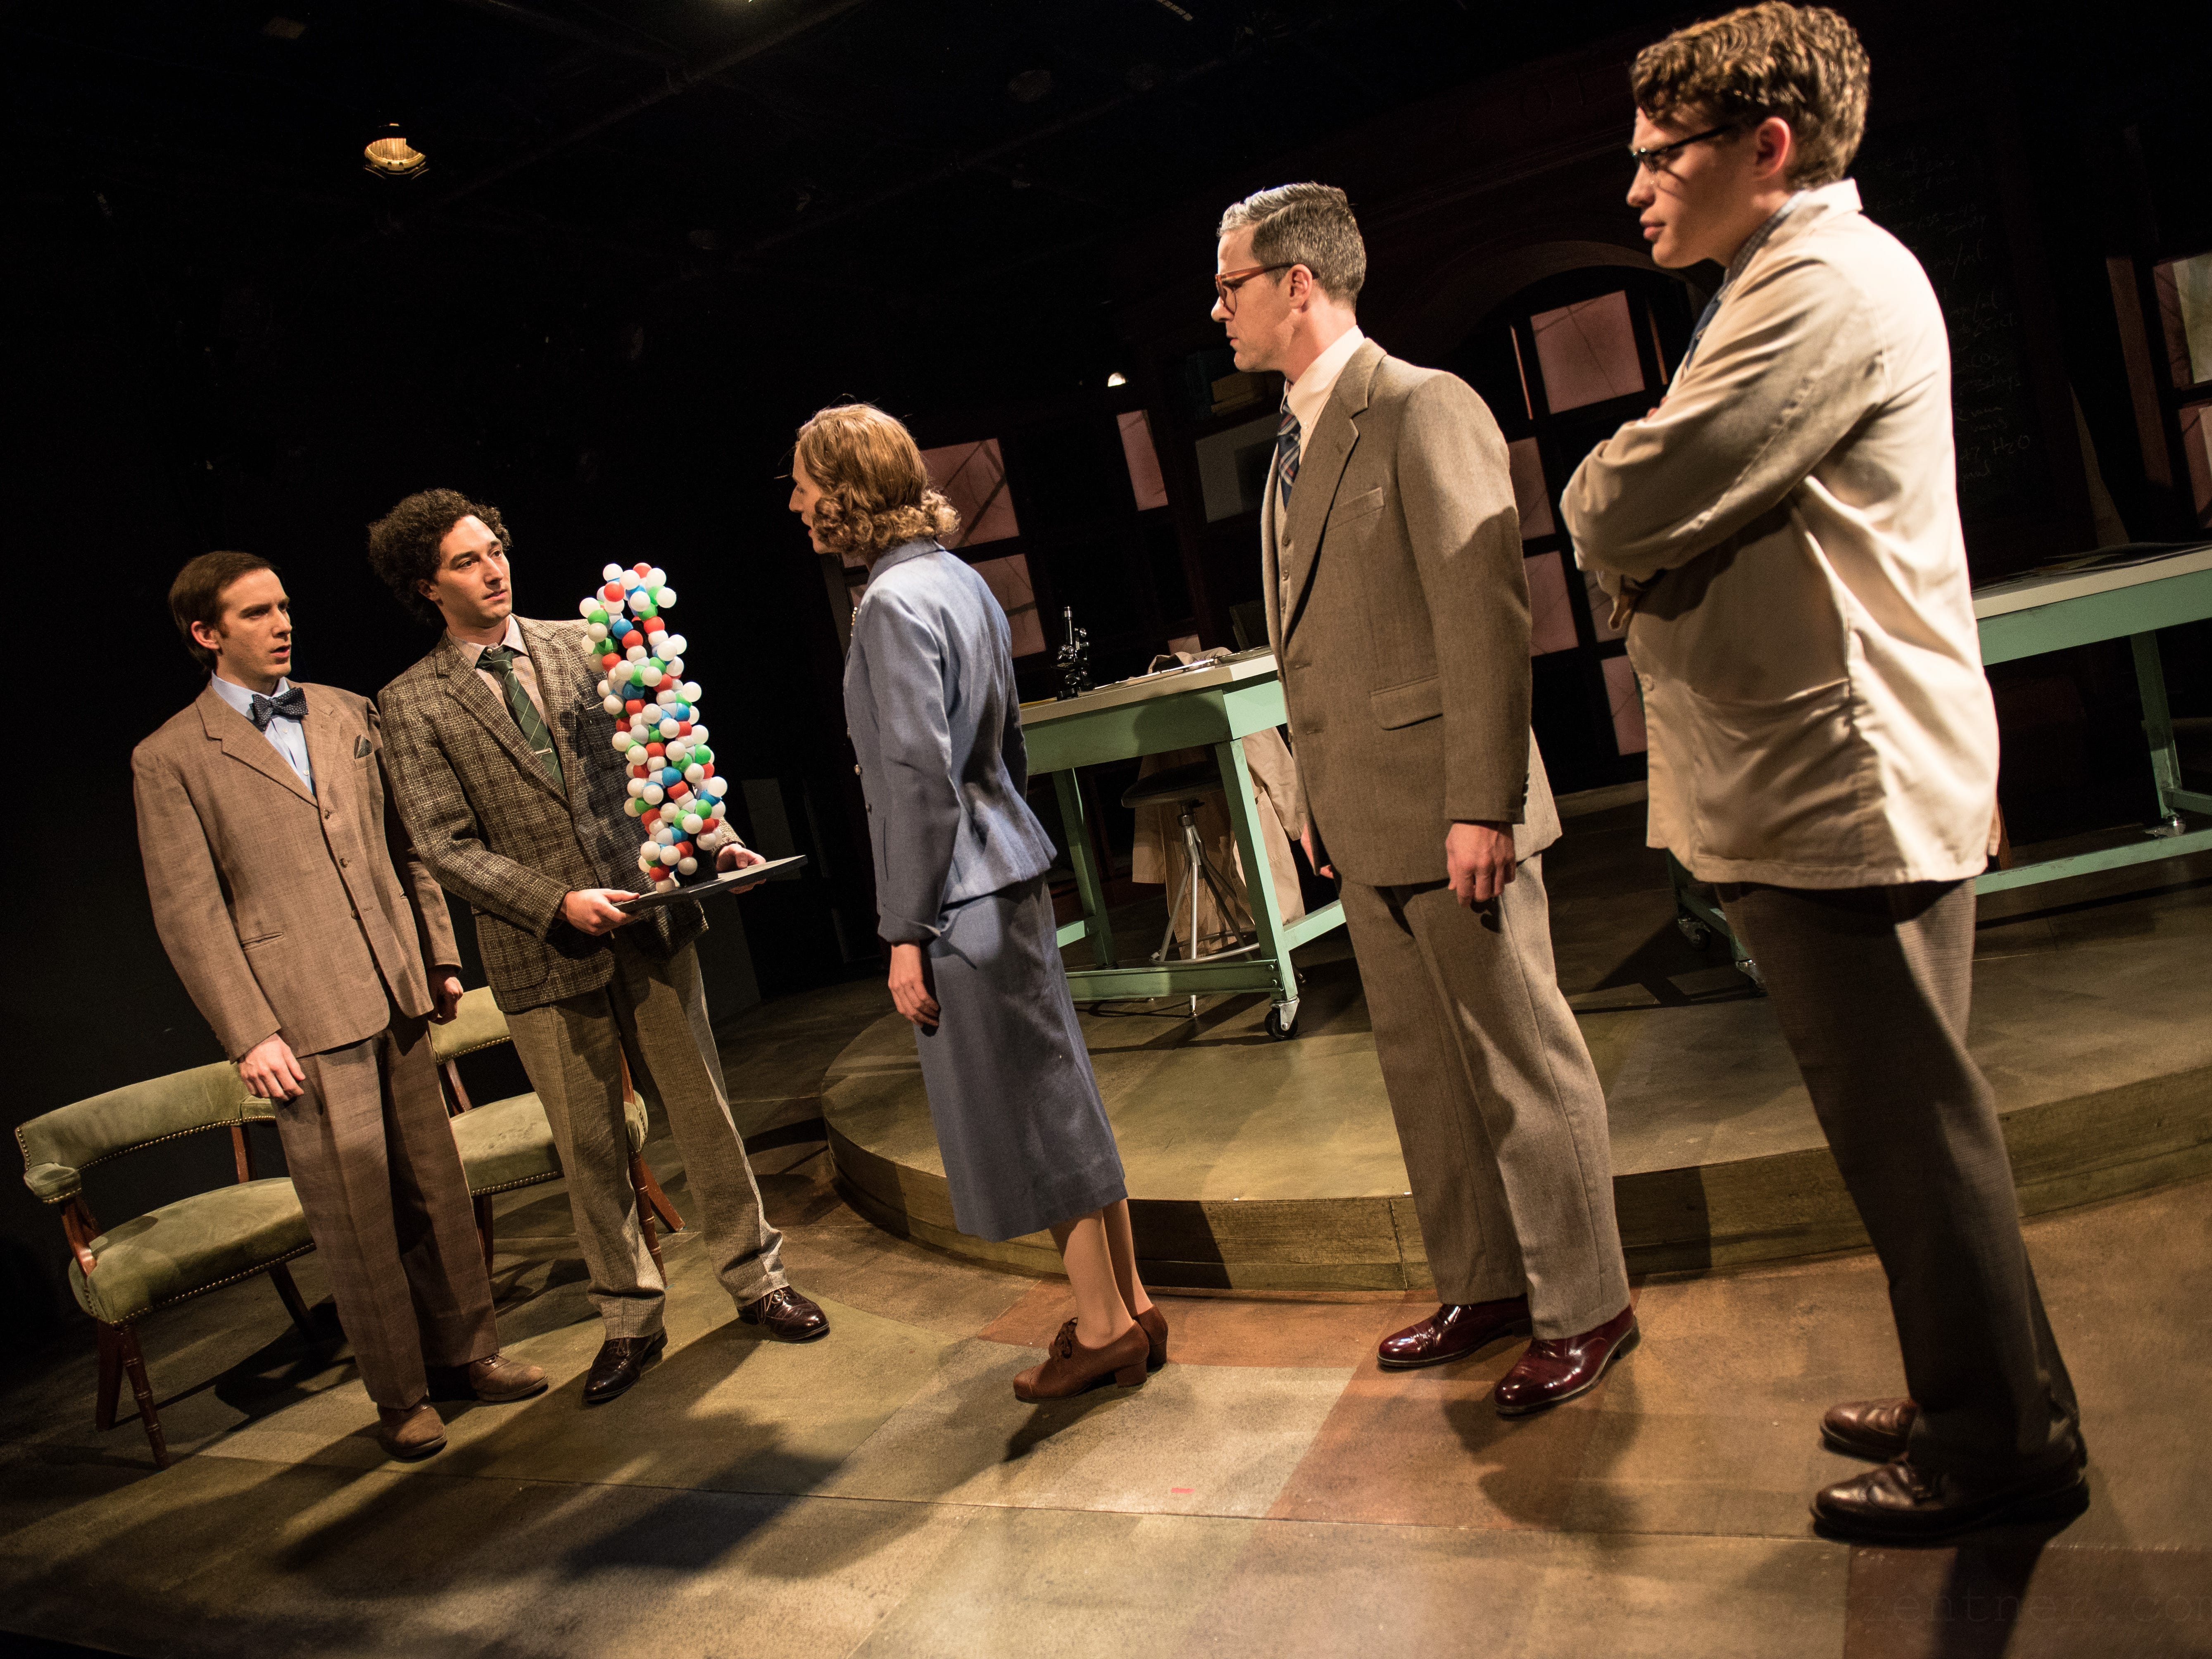 """Trevor Rees (left) and Nick Narcisi show a model of DNA to Cassandra Bissell, Neil Brookshire and Josh Krause in Renaissance Theaterworks' production of """"Photograph 51."""""""